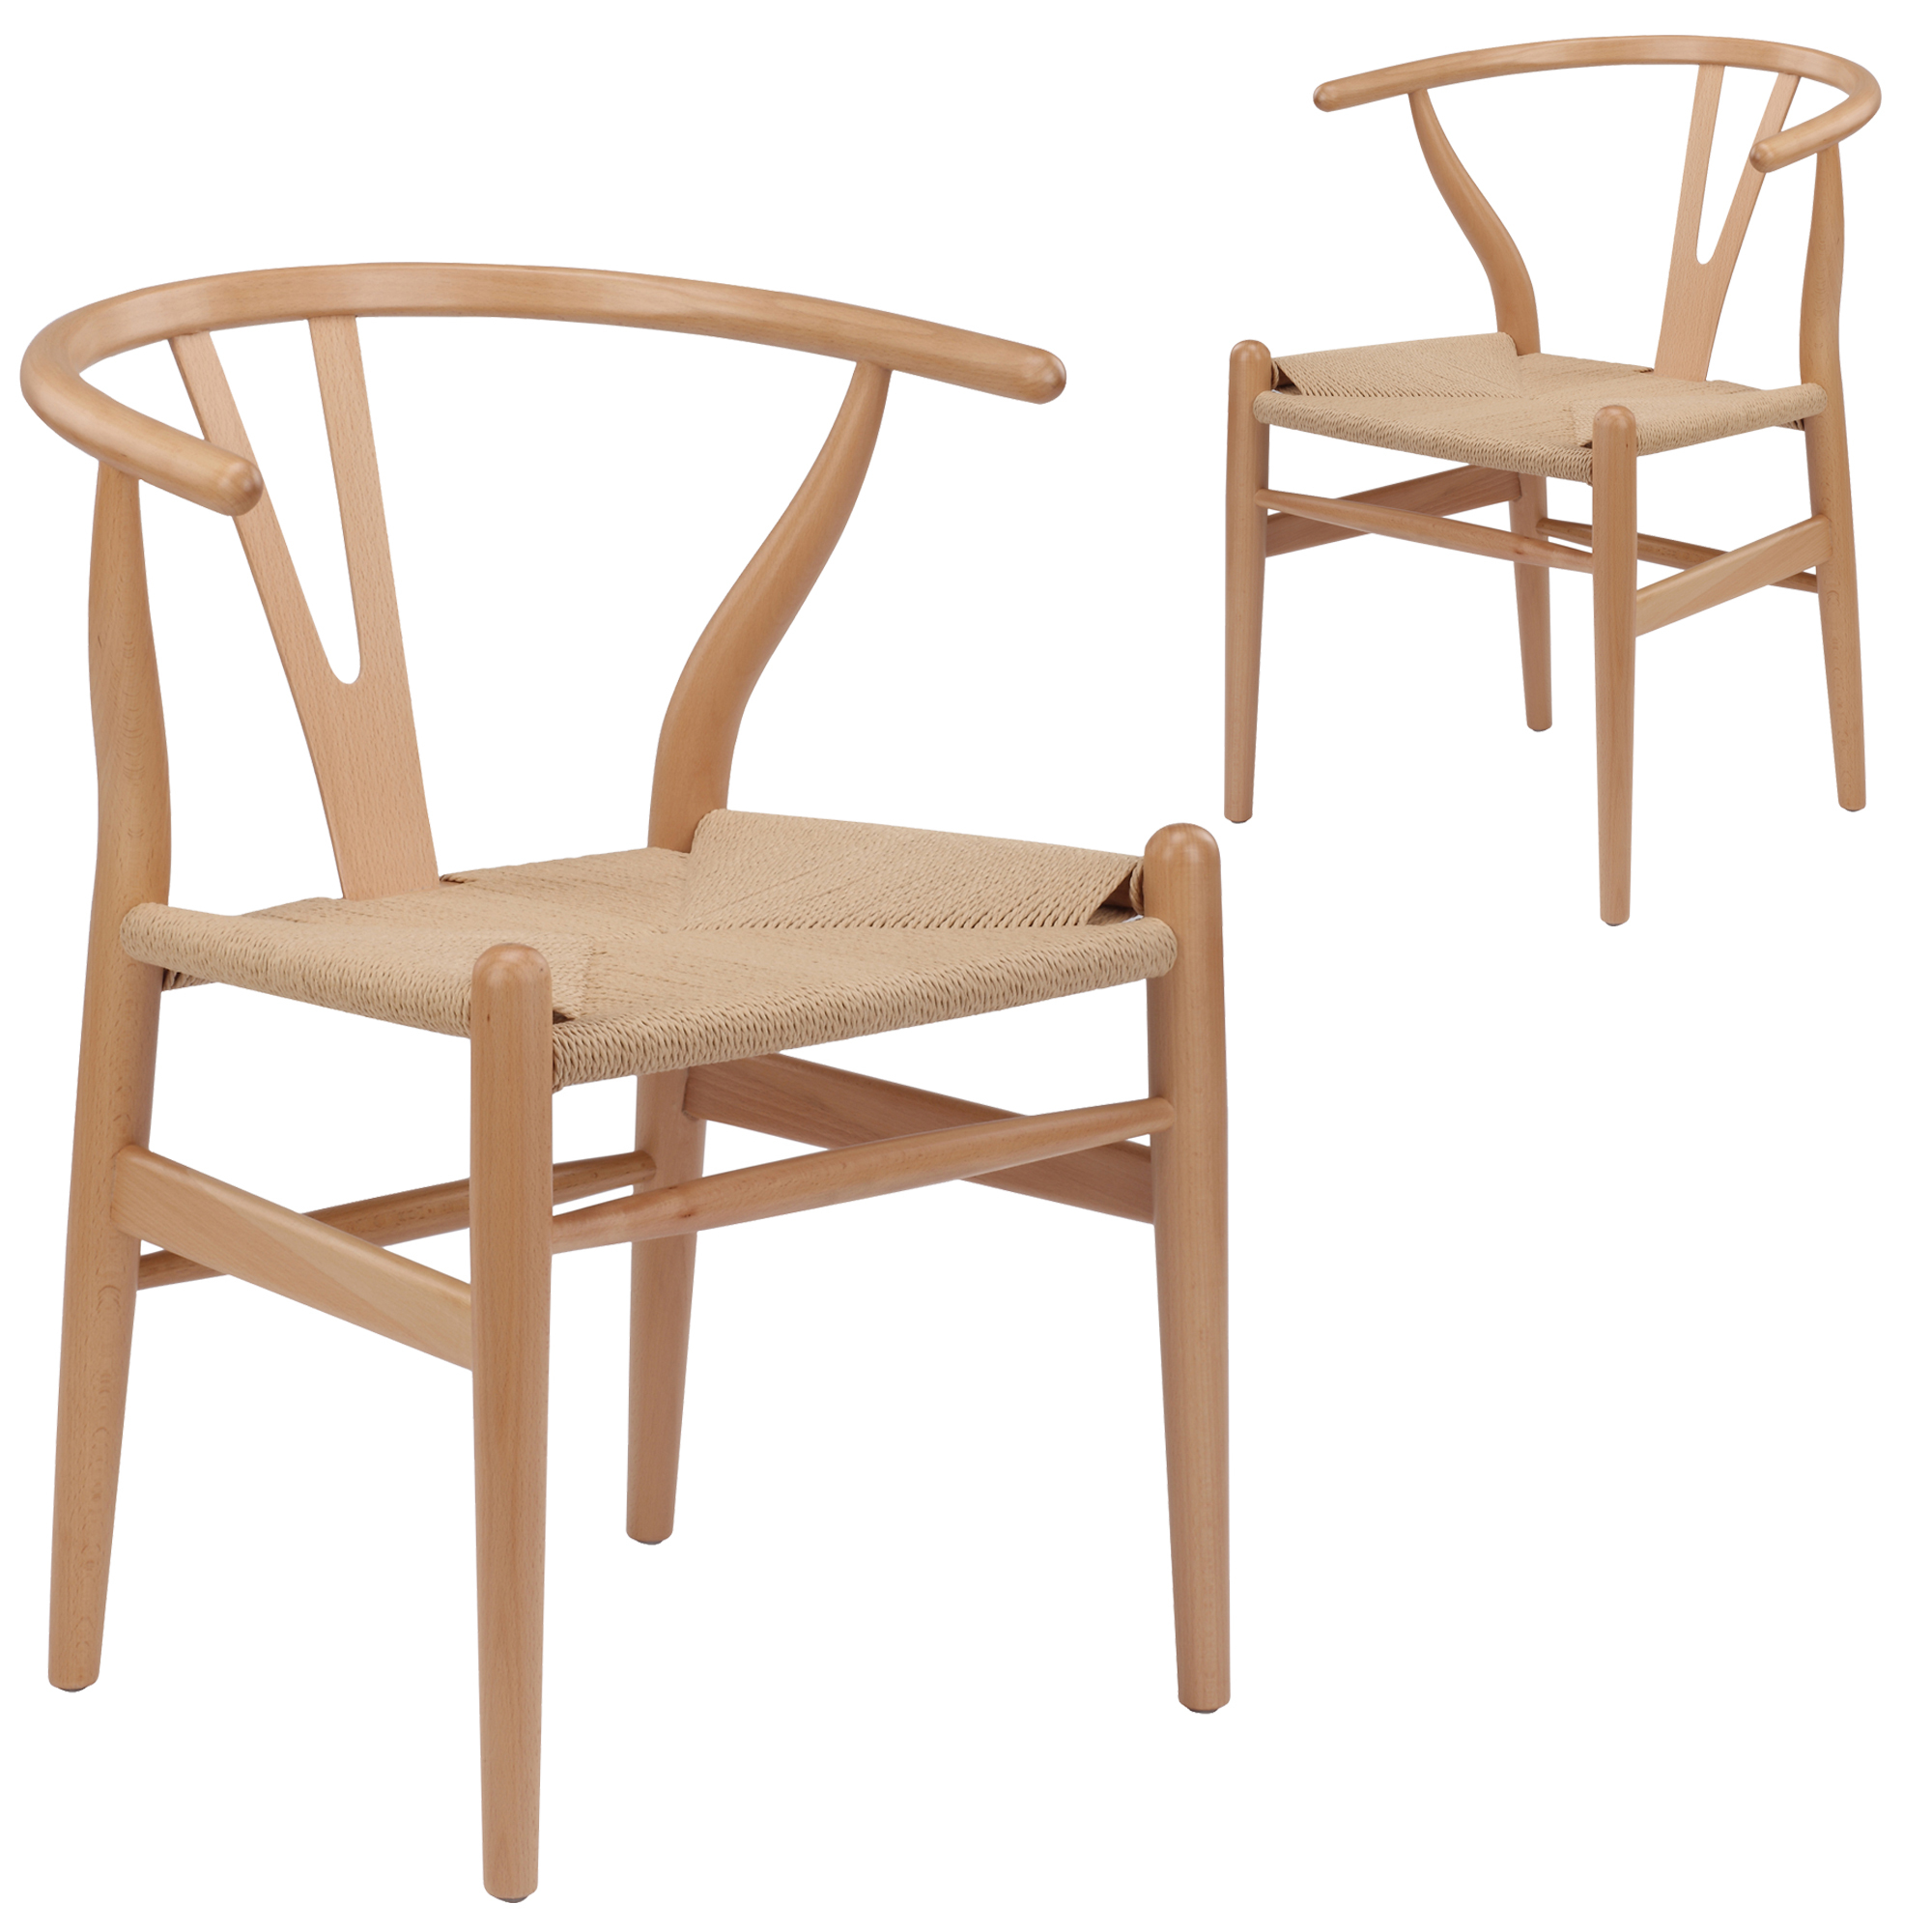 Wishbone Chairs Natural Hans Wegner Replica Wishbone Chair